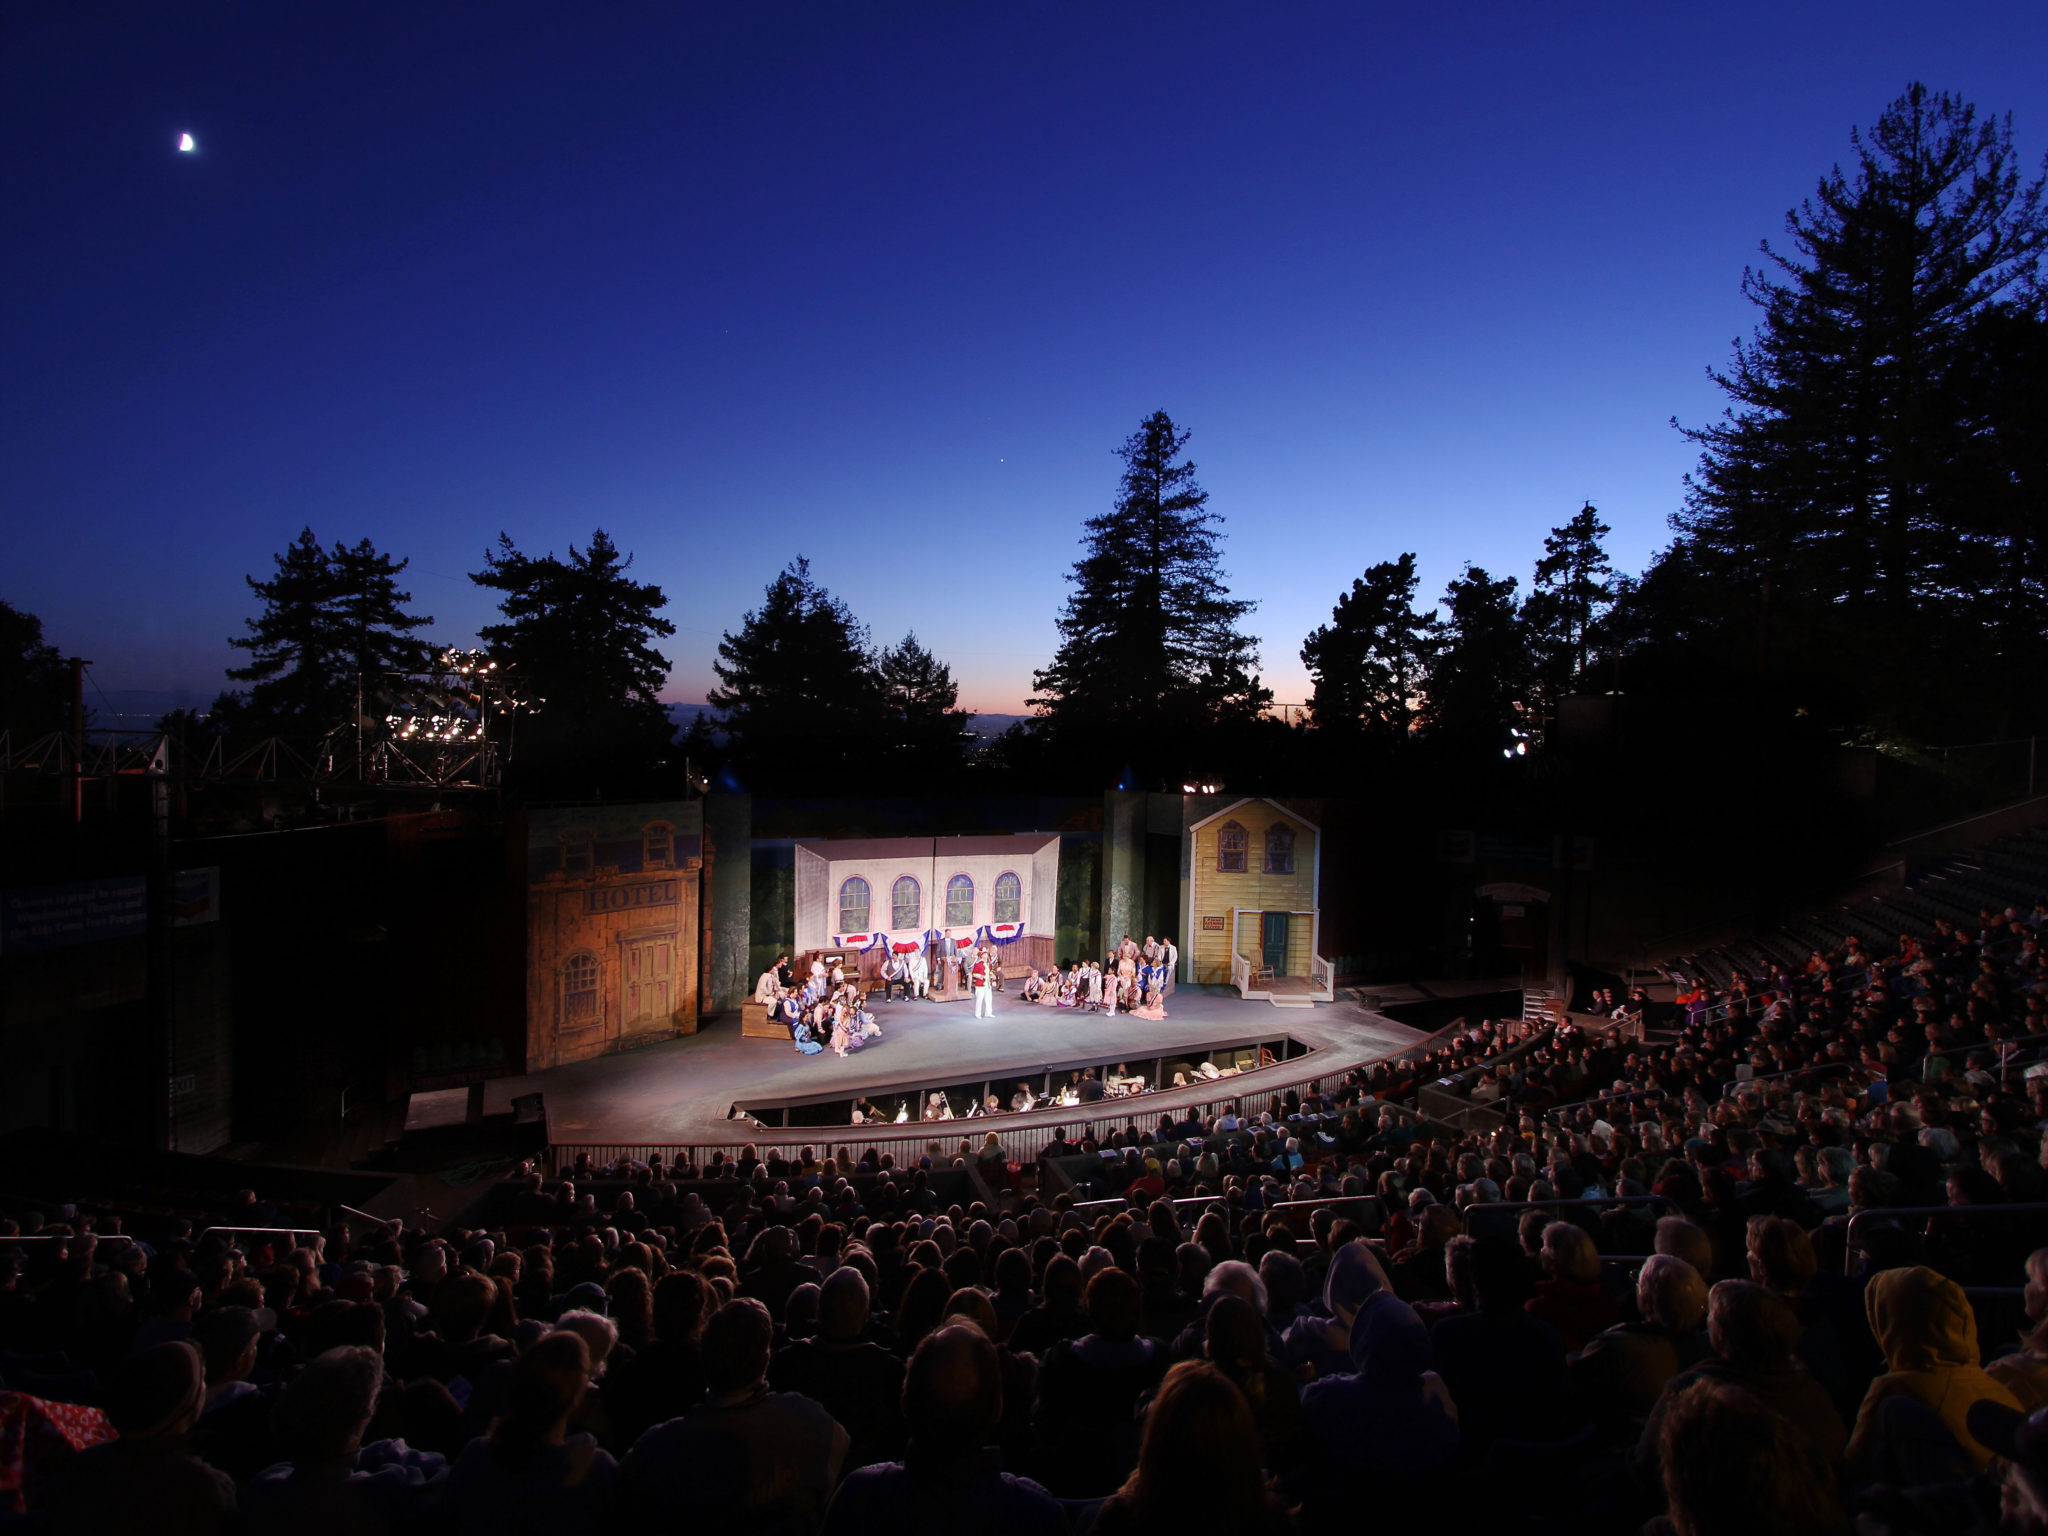 Woodminster Theater Summer Musicals - Joaquin Miller Park